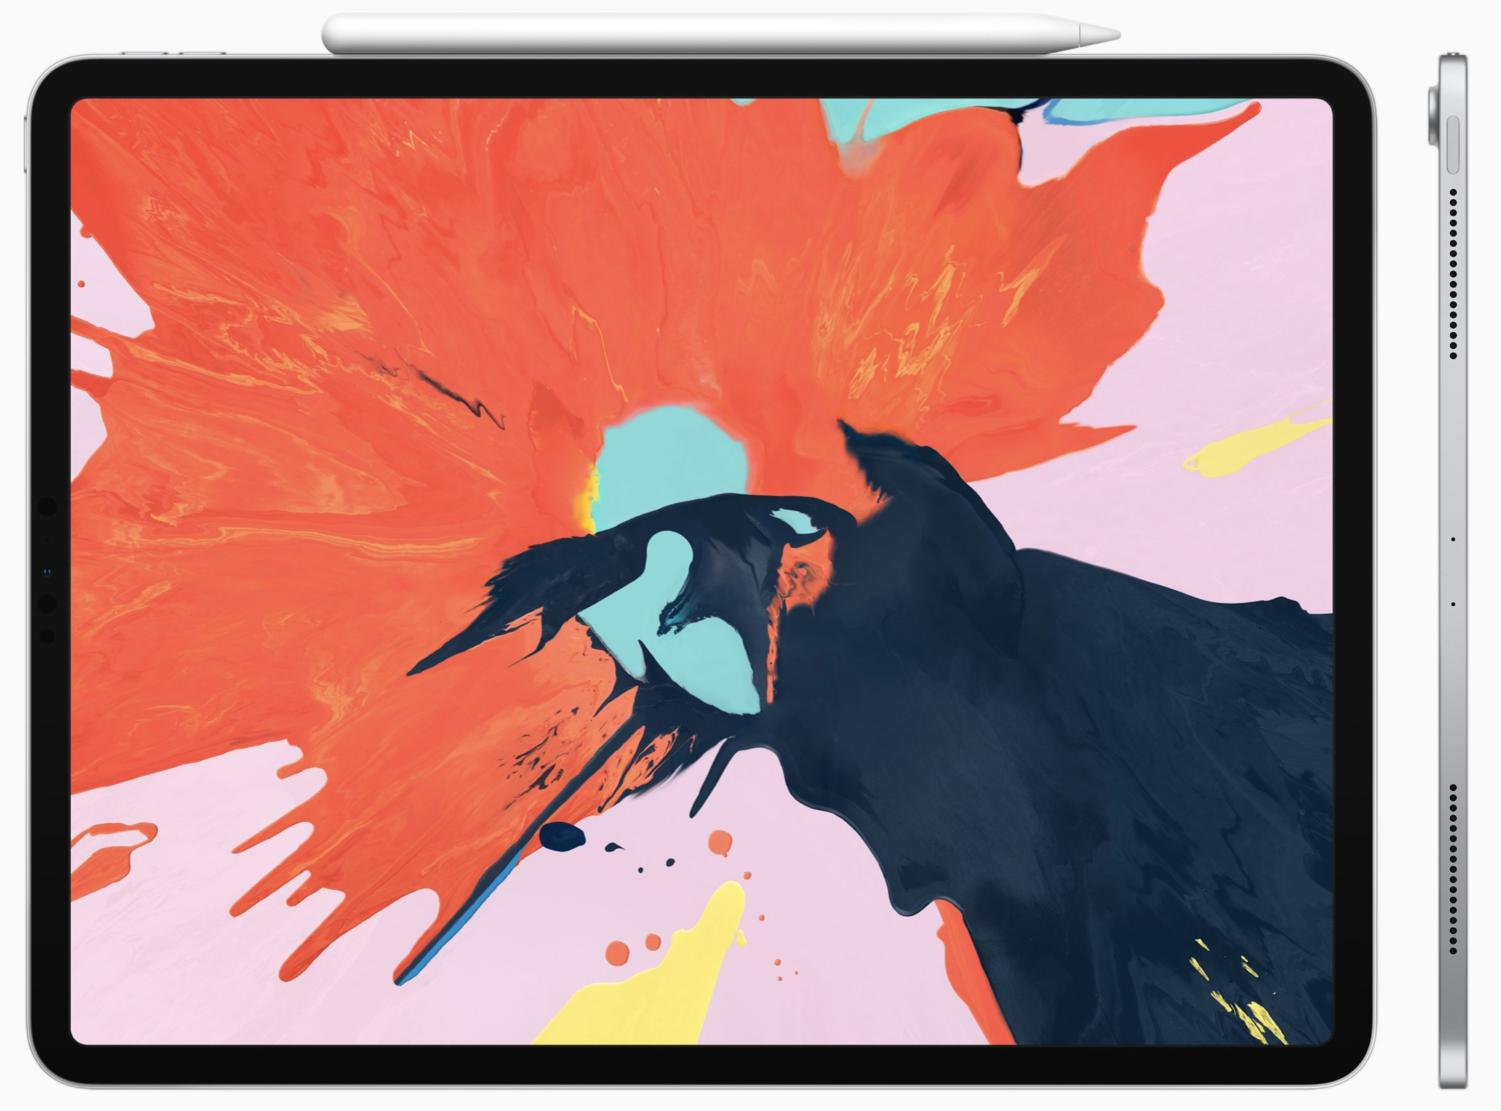 The new iPad Pro with Apple Pencil allows for it to be both a computer replacement and a more hand-held device.